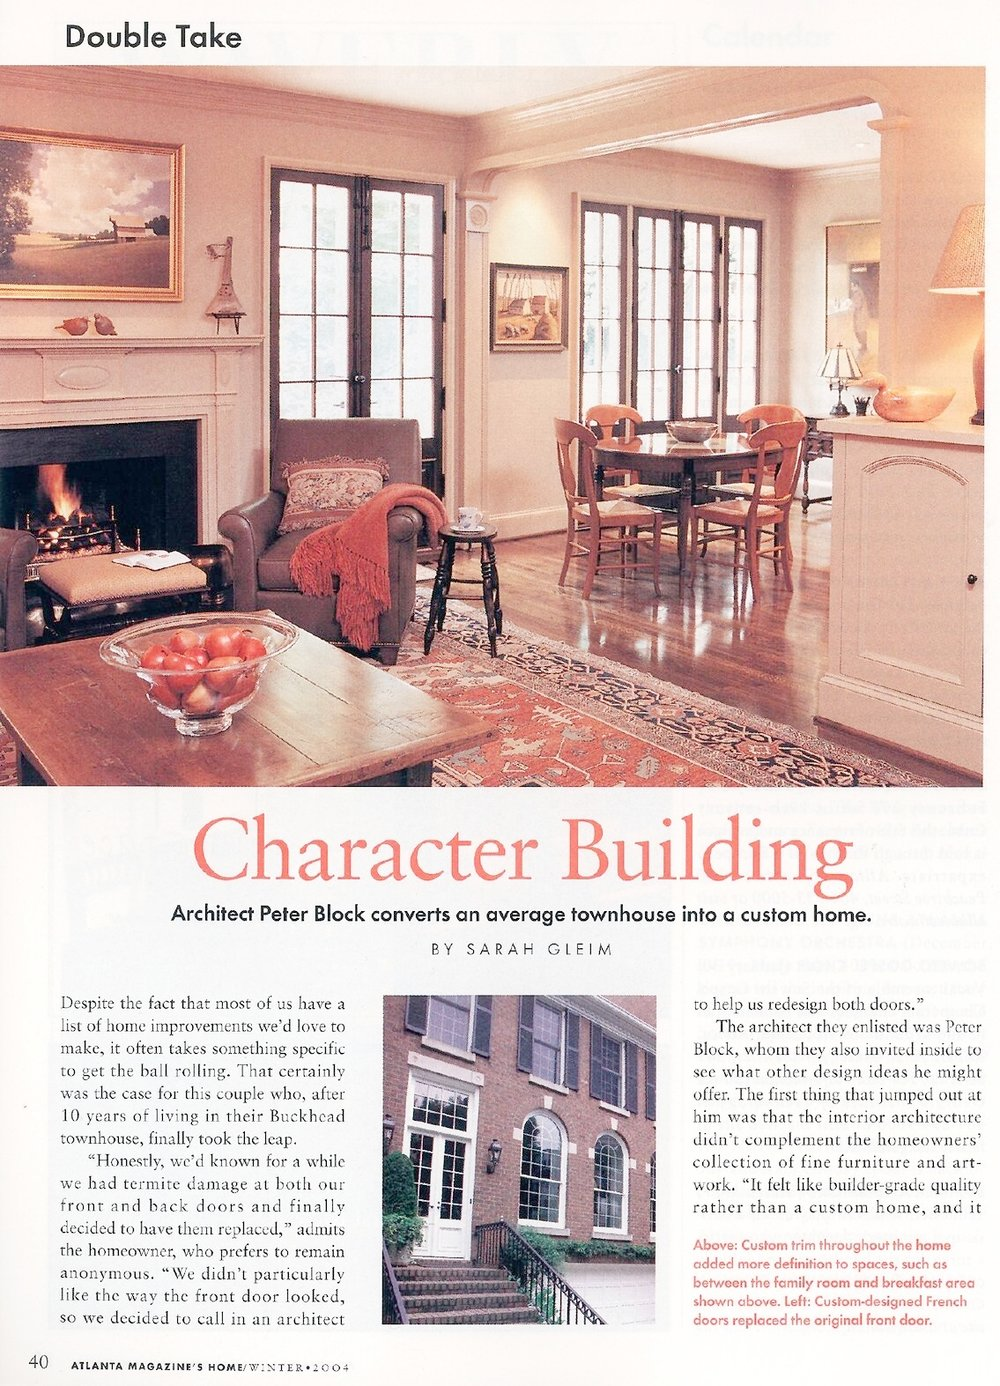 Character Building - Published in Atlanta Magazine's HOME, Winter 2004